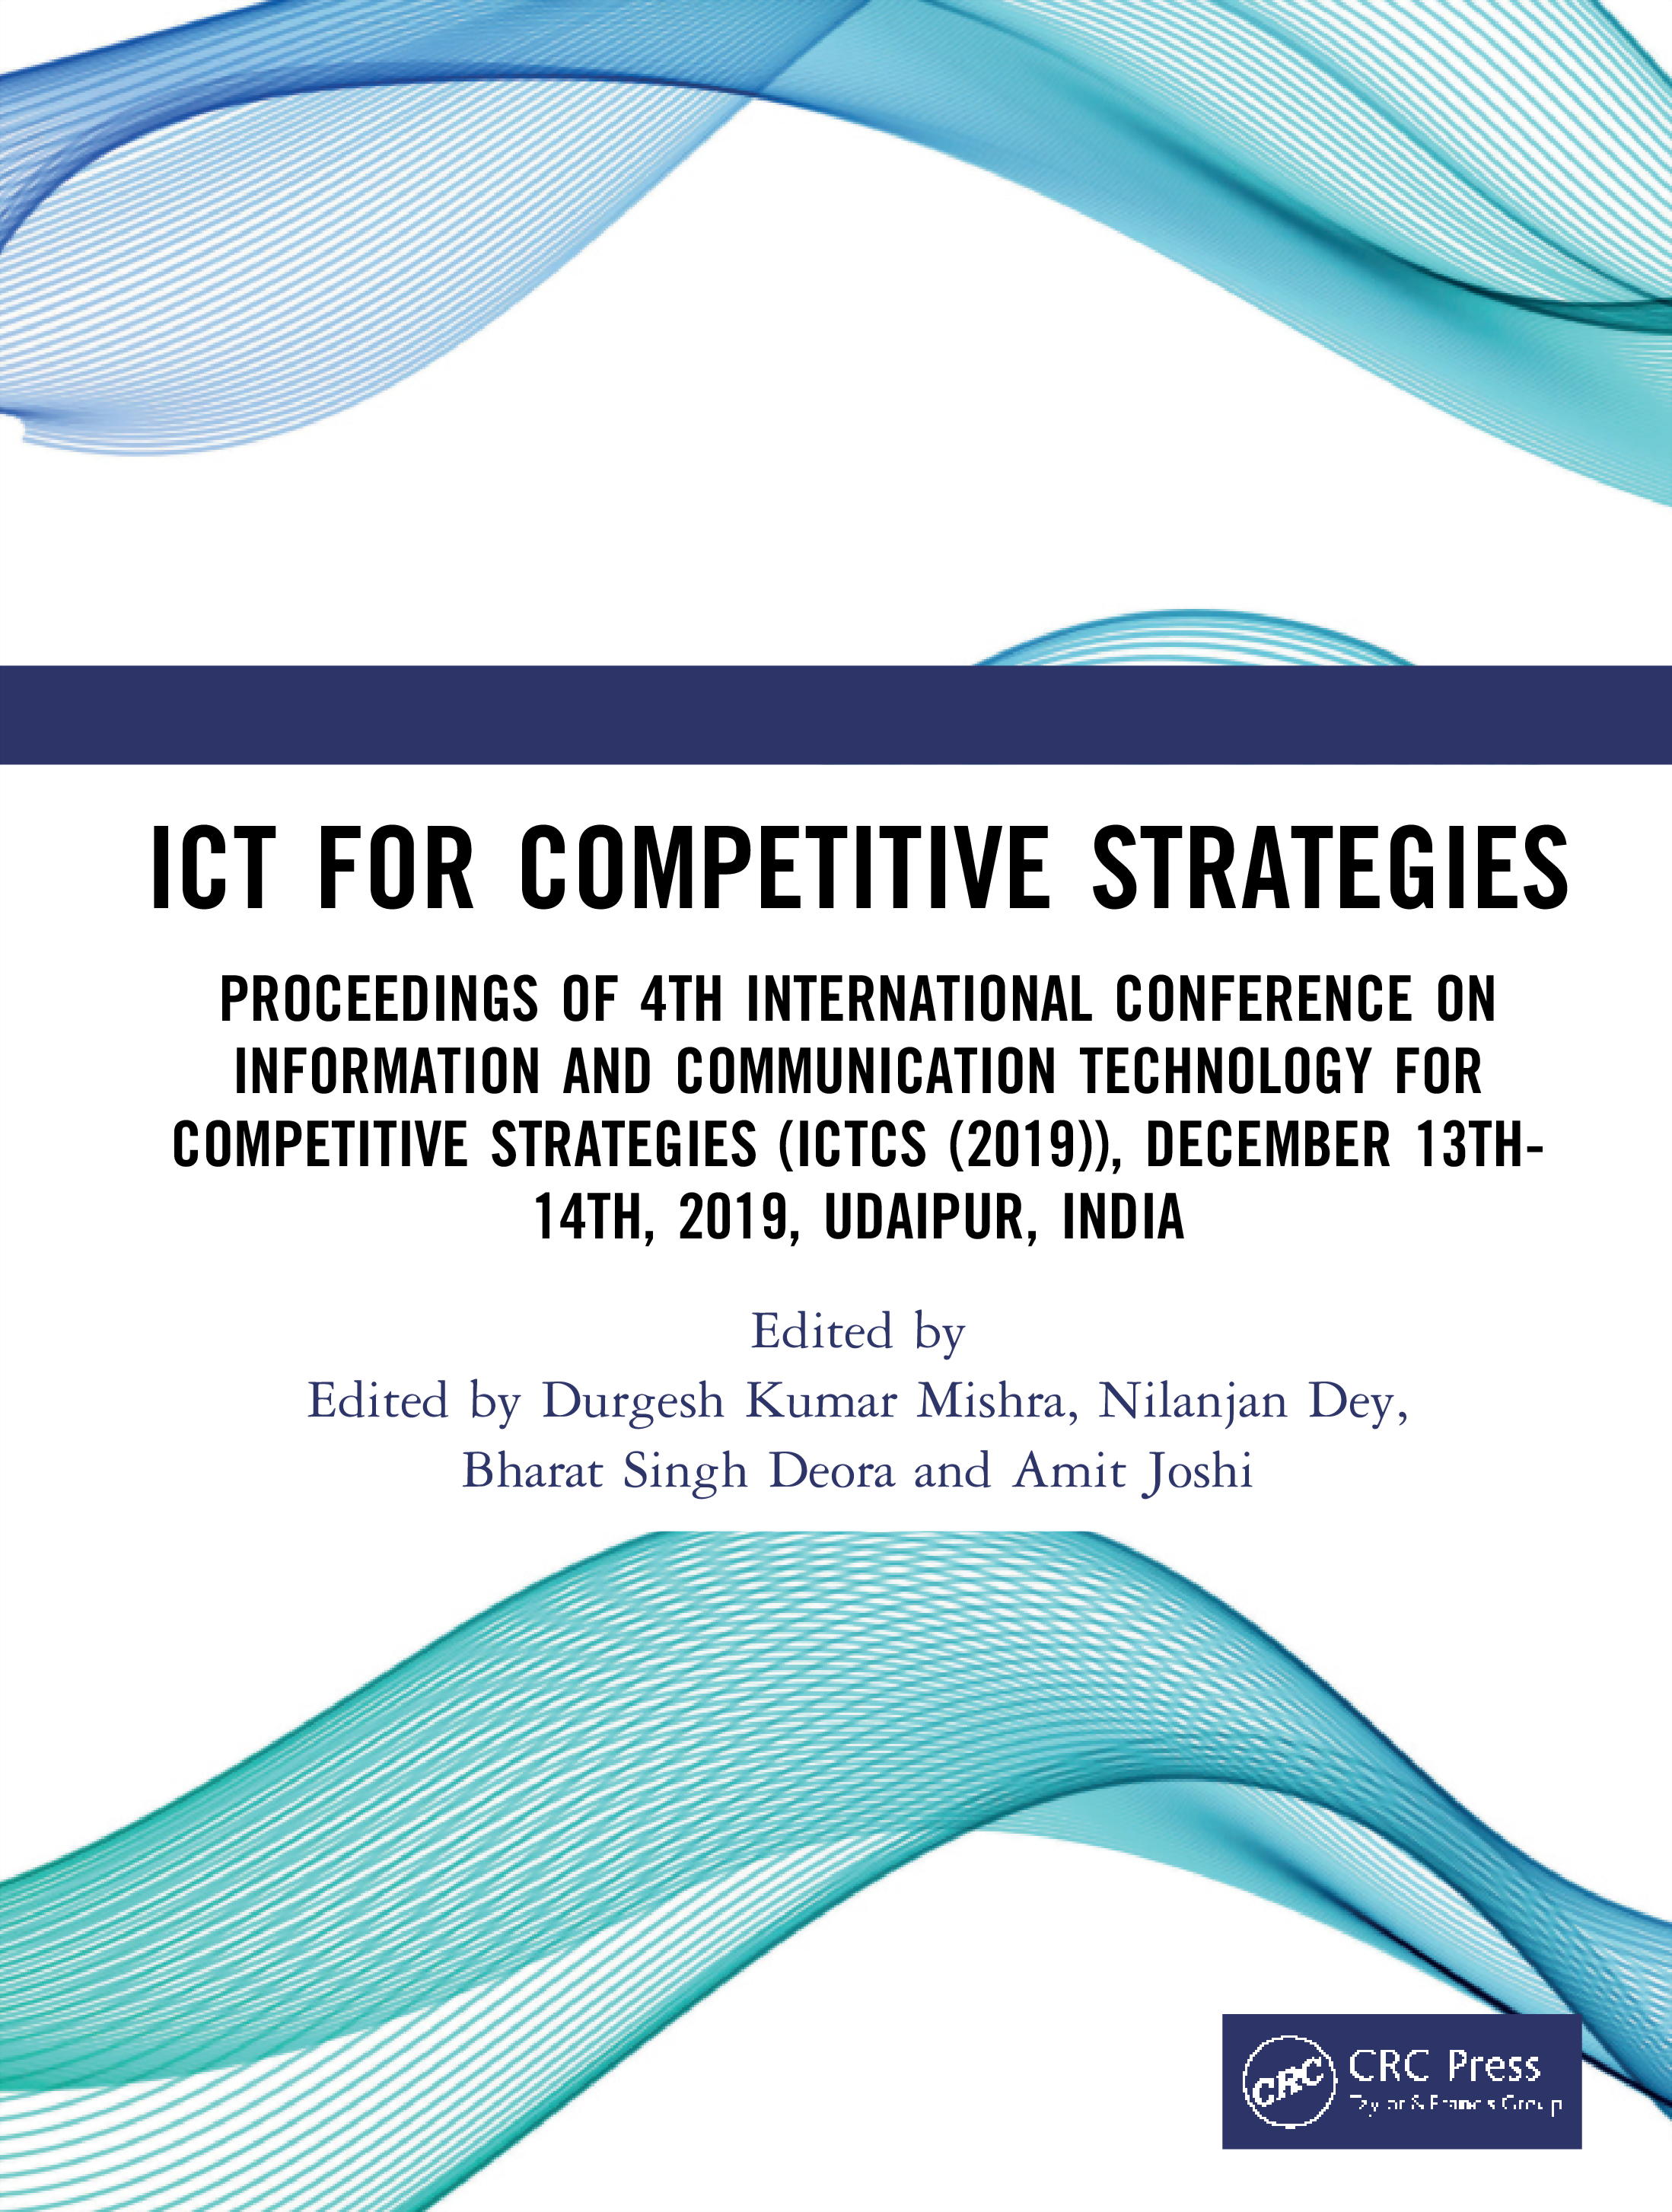 ICT for Competitive Strategies